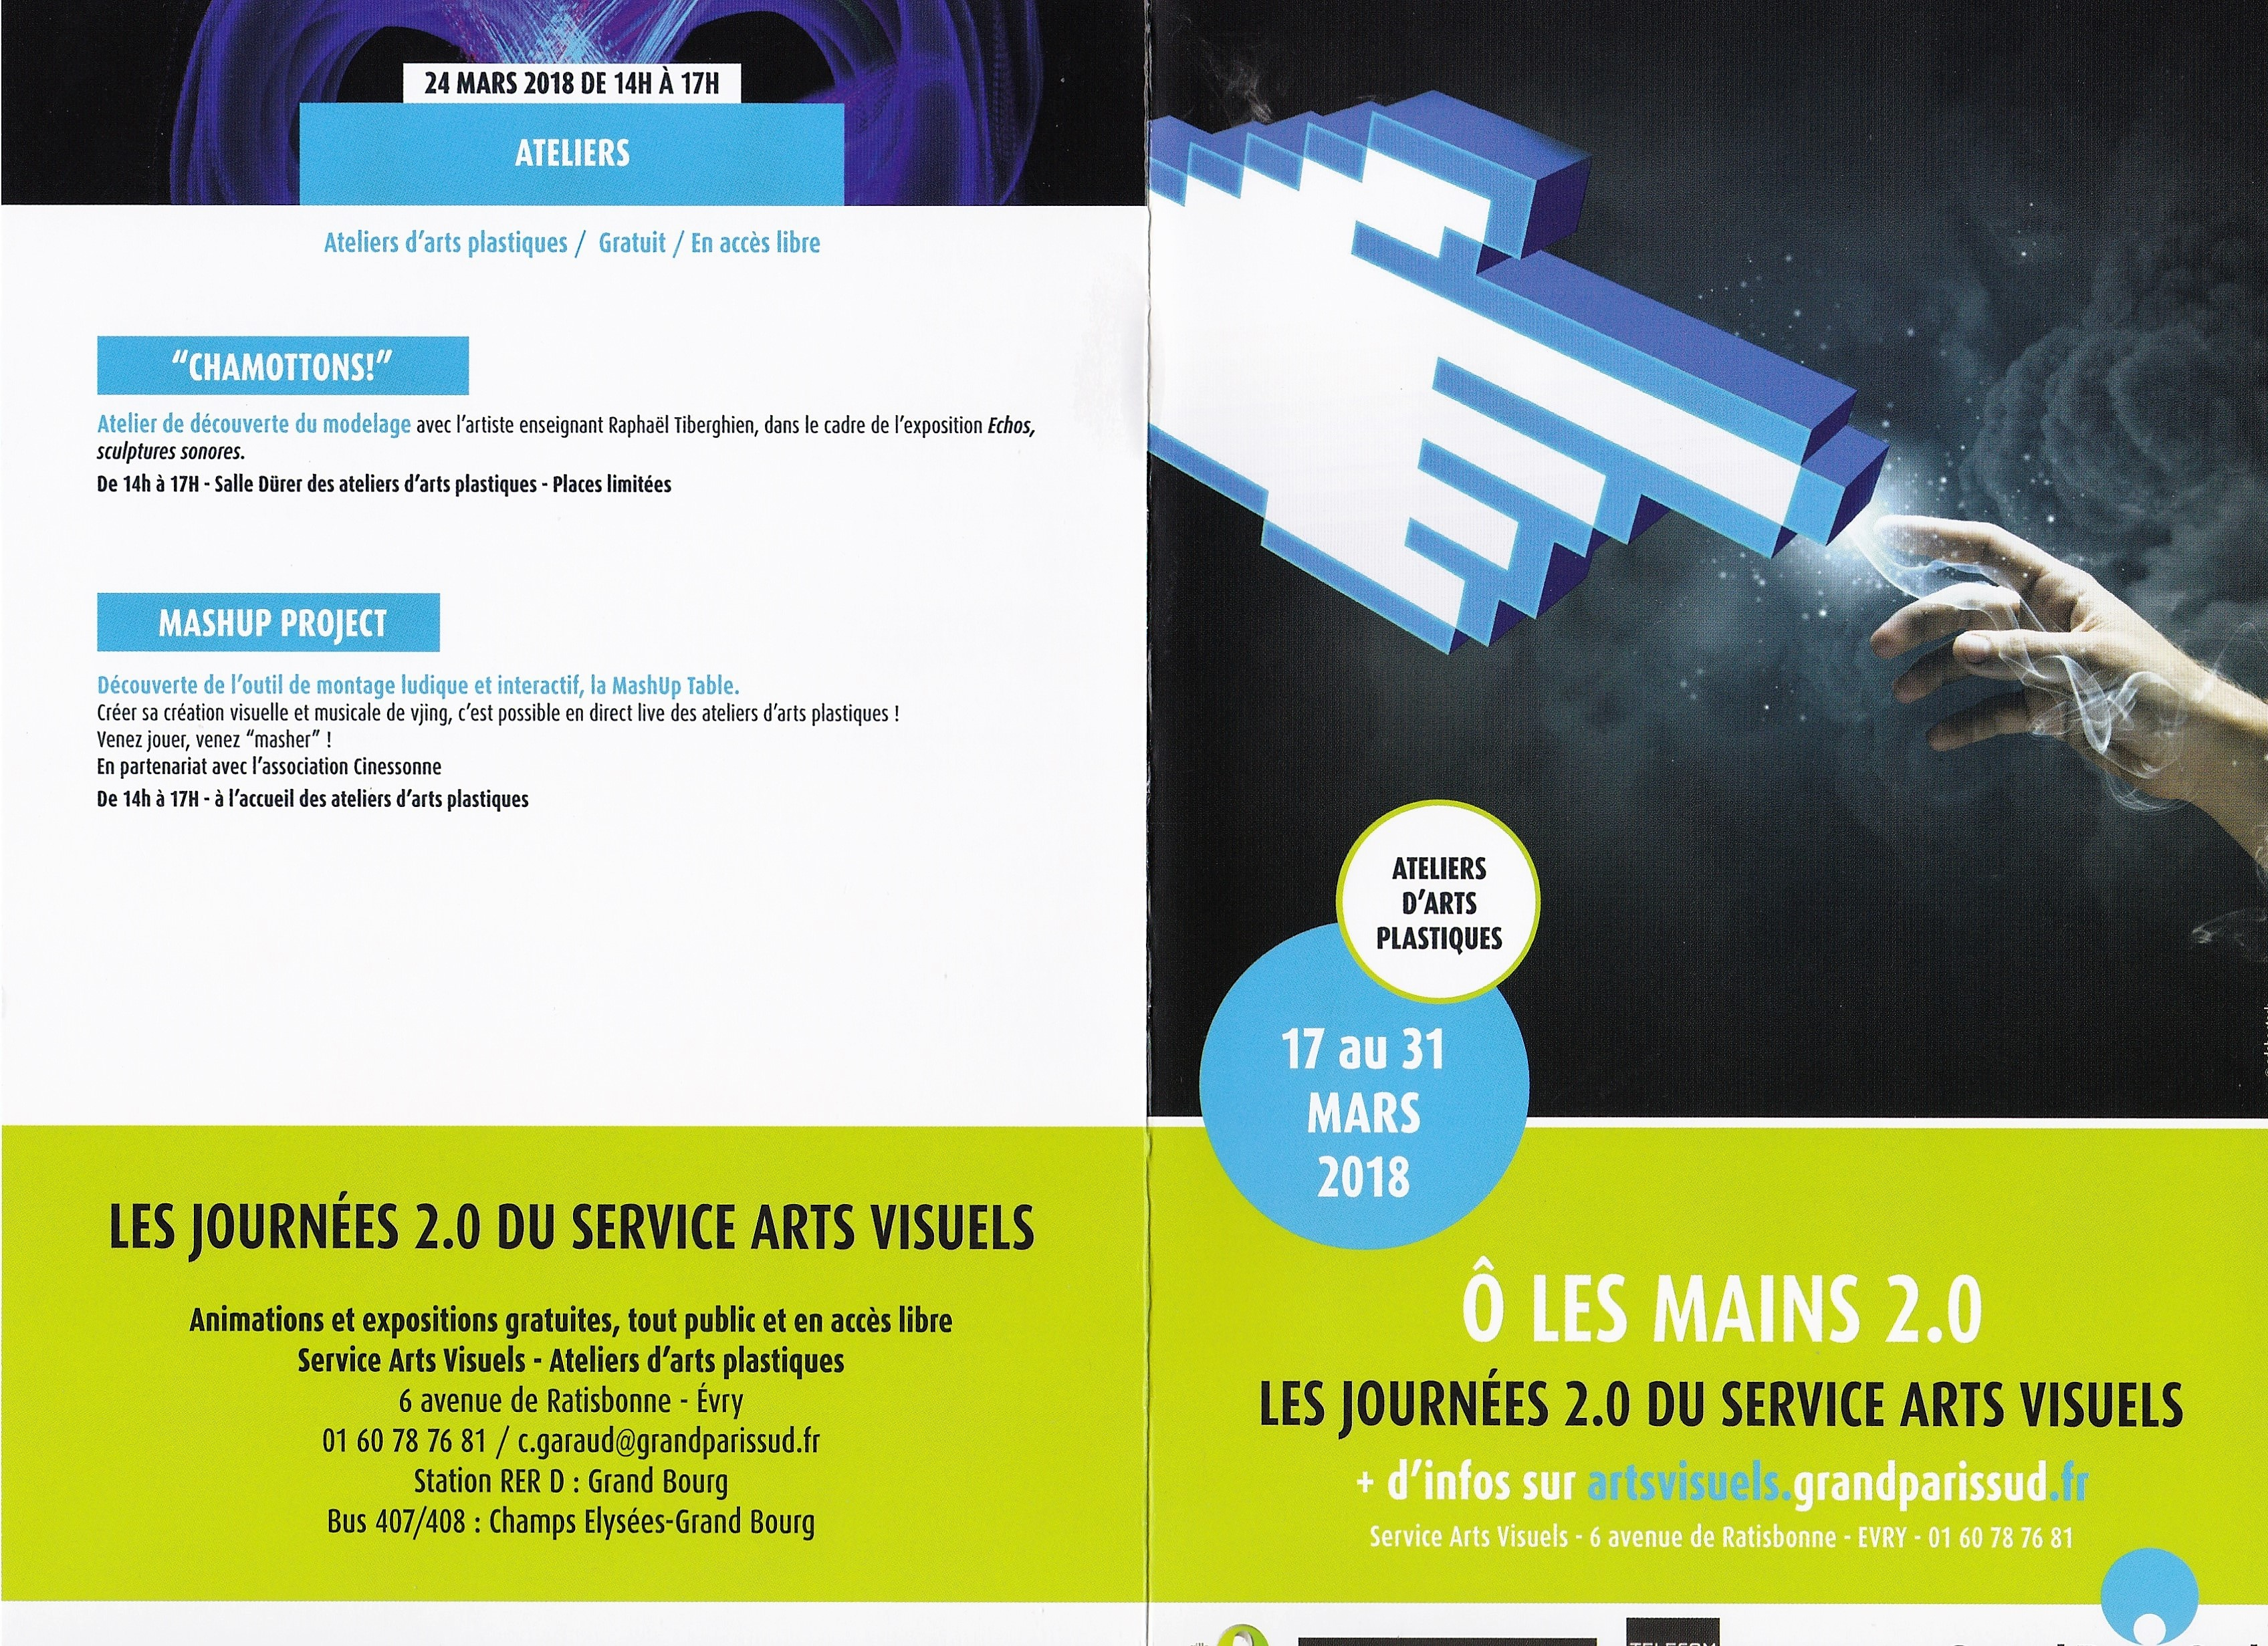 flyer-o-les-mains-2.0-recto-aap-evry-2018